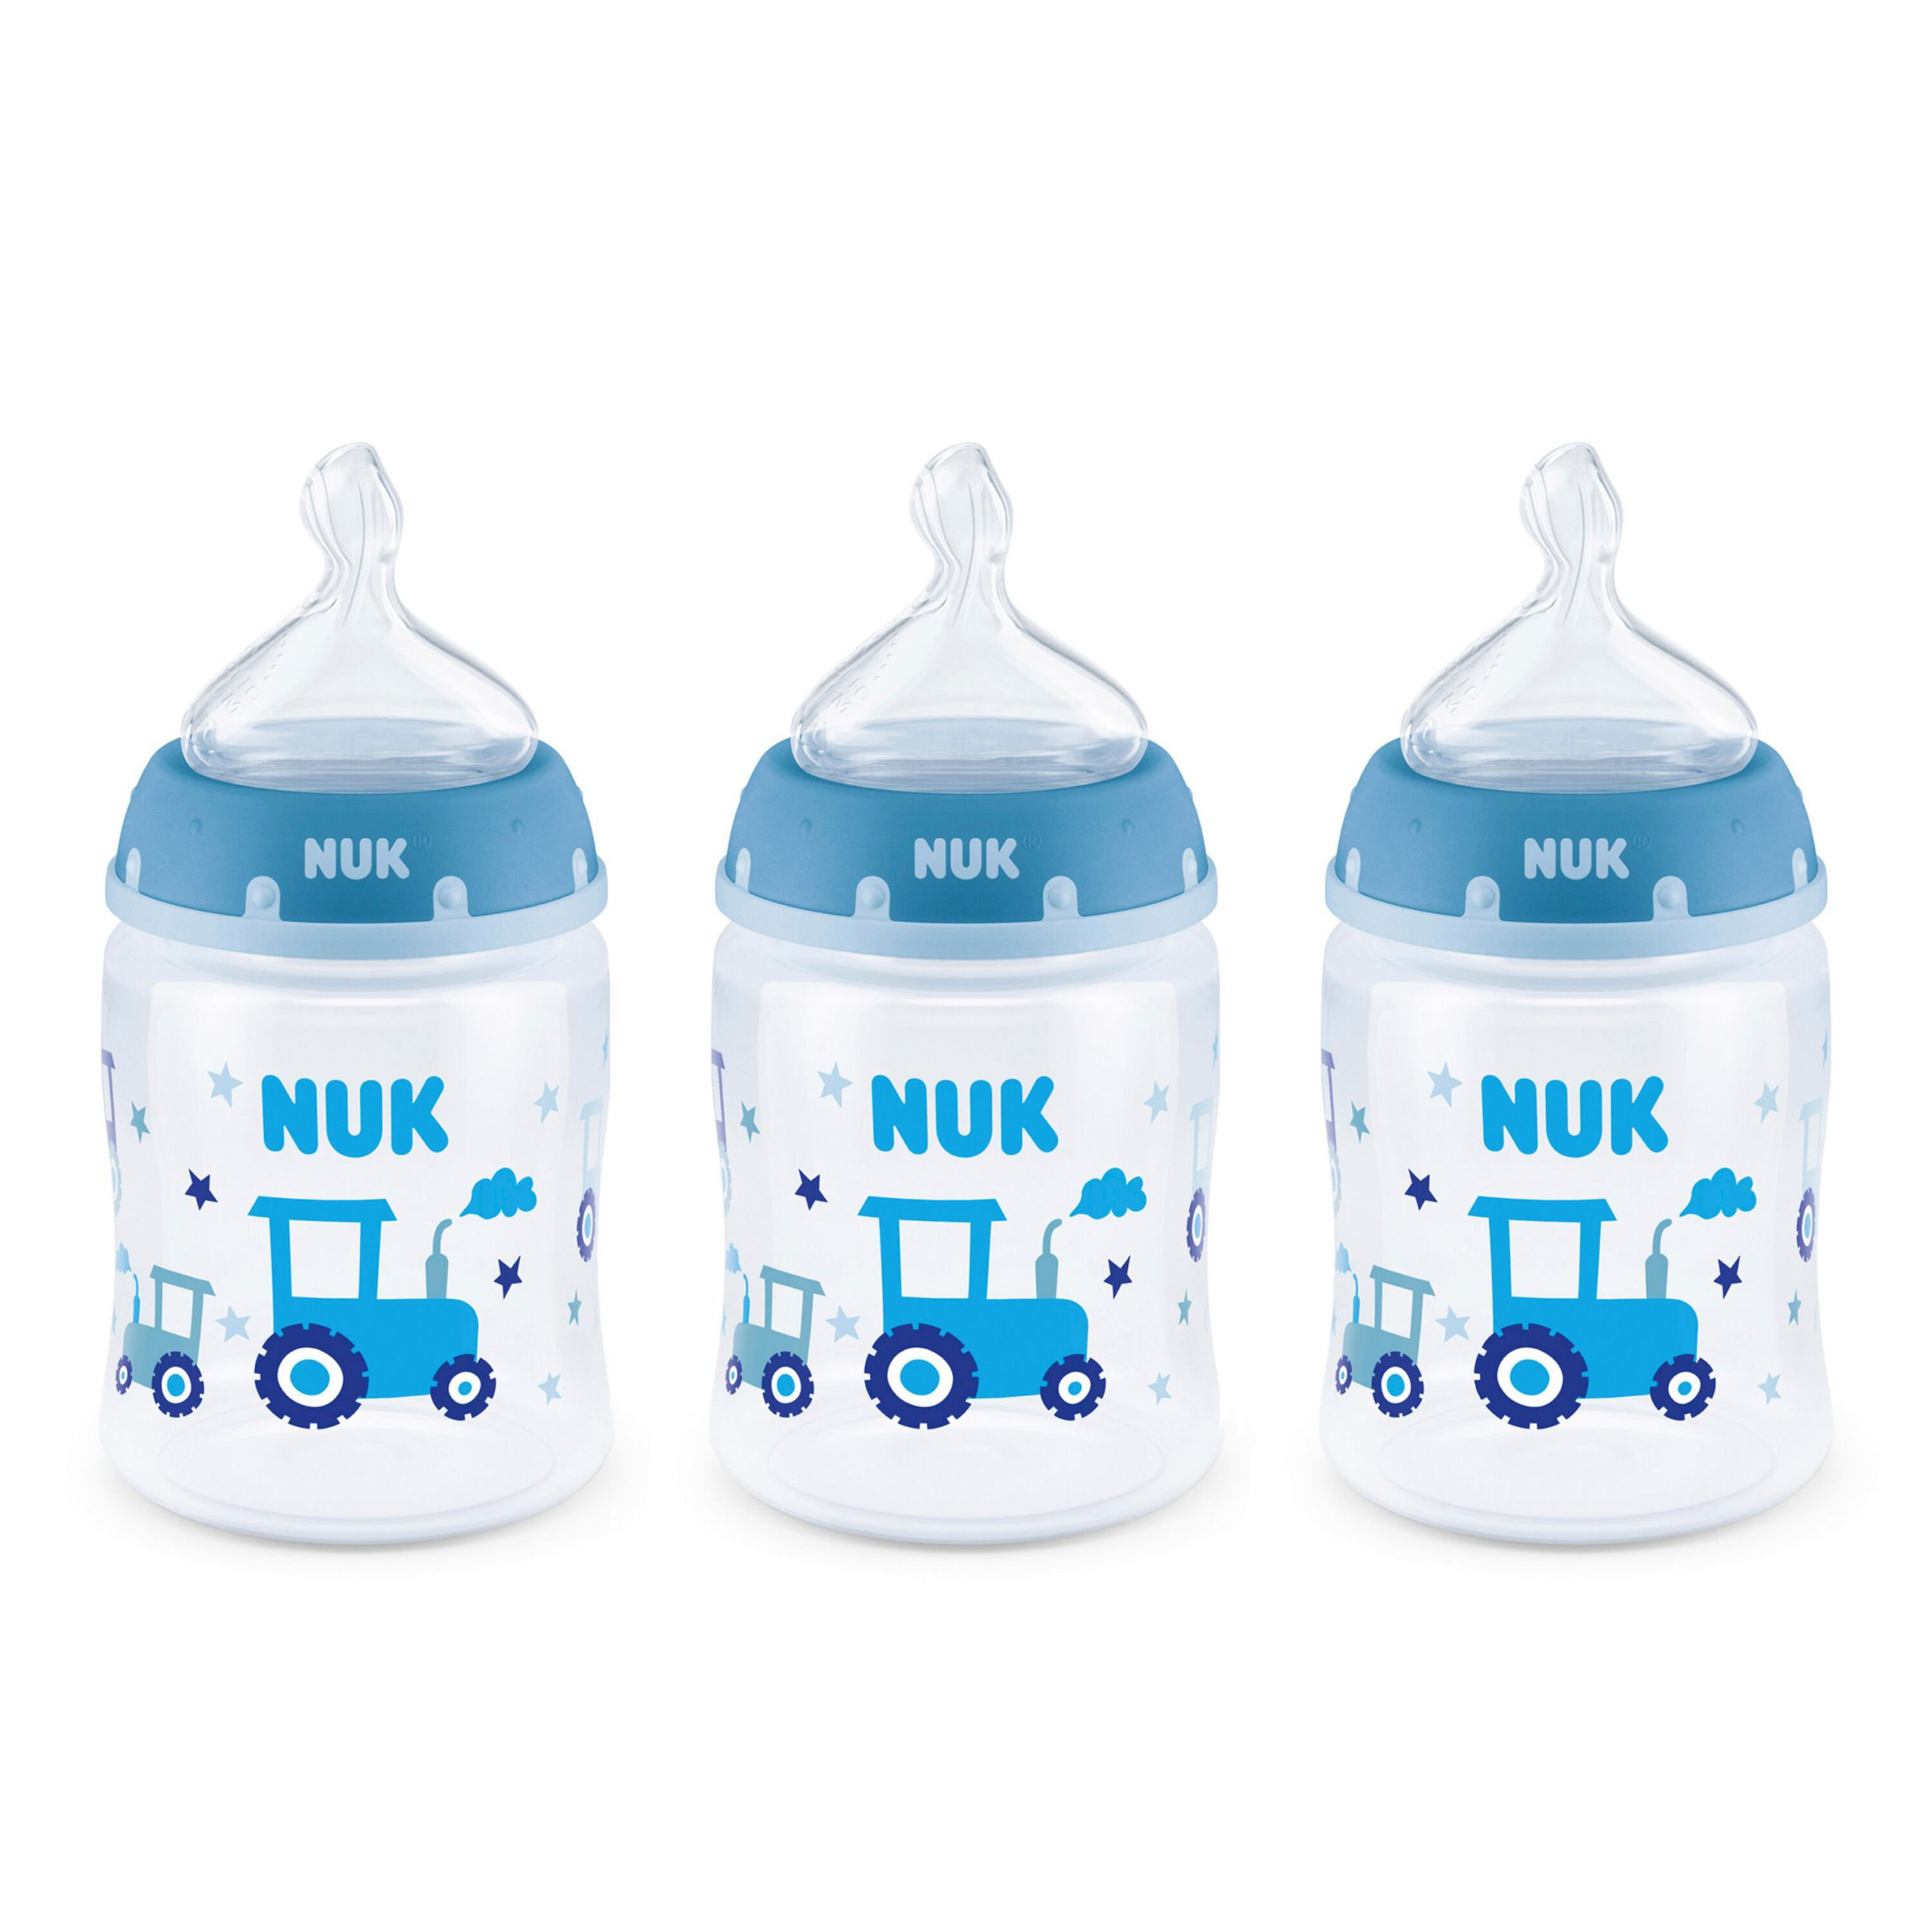 NUK® Smooth Flow™ Anti-Colic Bottle, 5 oz, 3-Pack, Boy Product Image 1 of 9